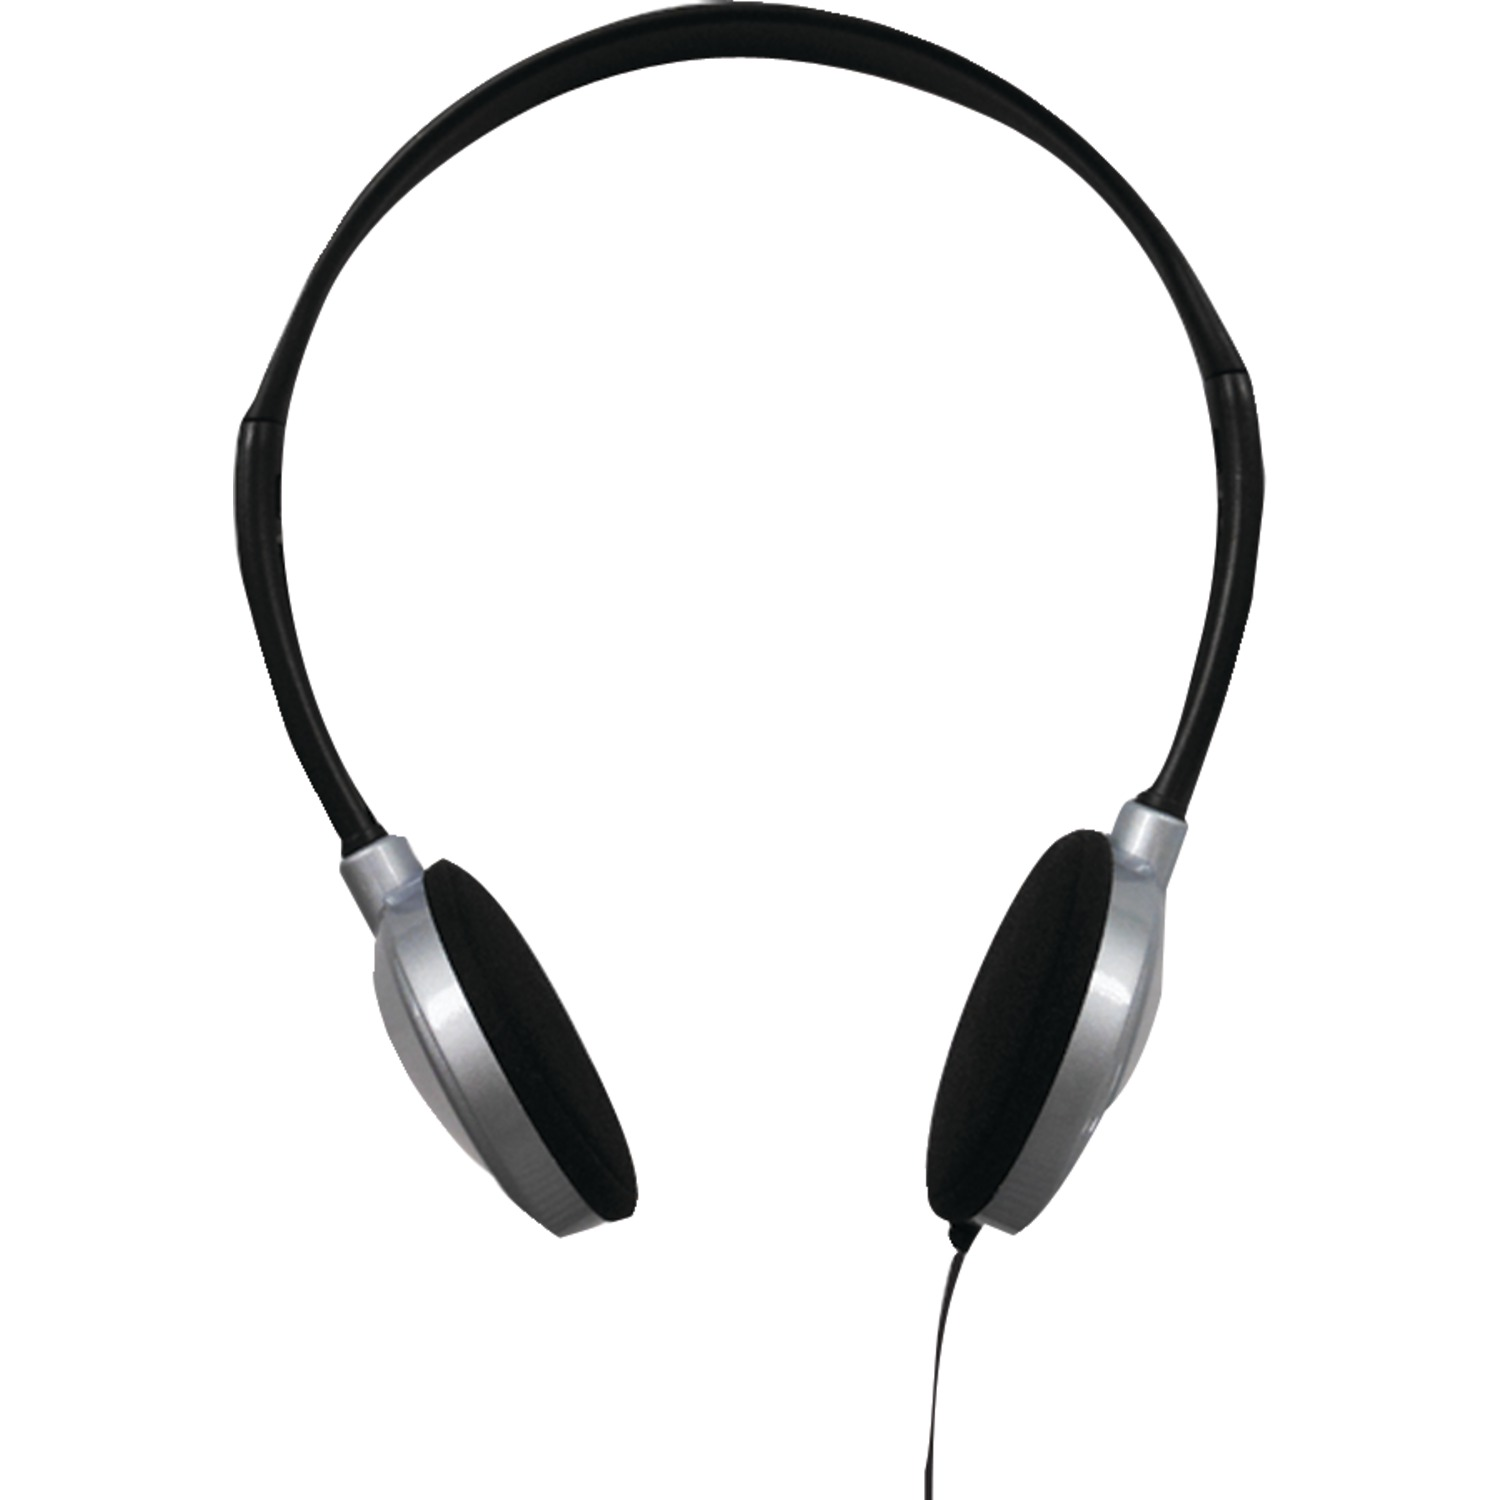 Image for Maxell HP 200 - headphones from Circuit City